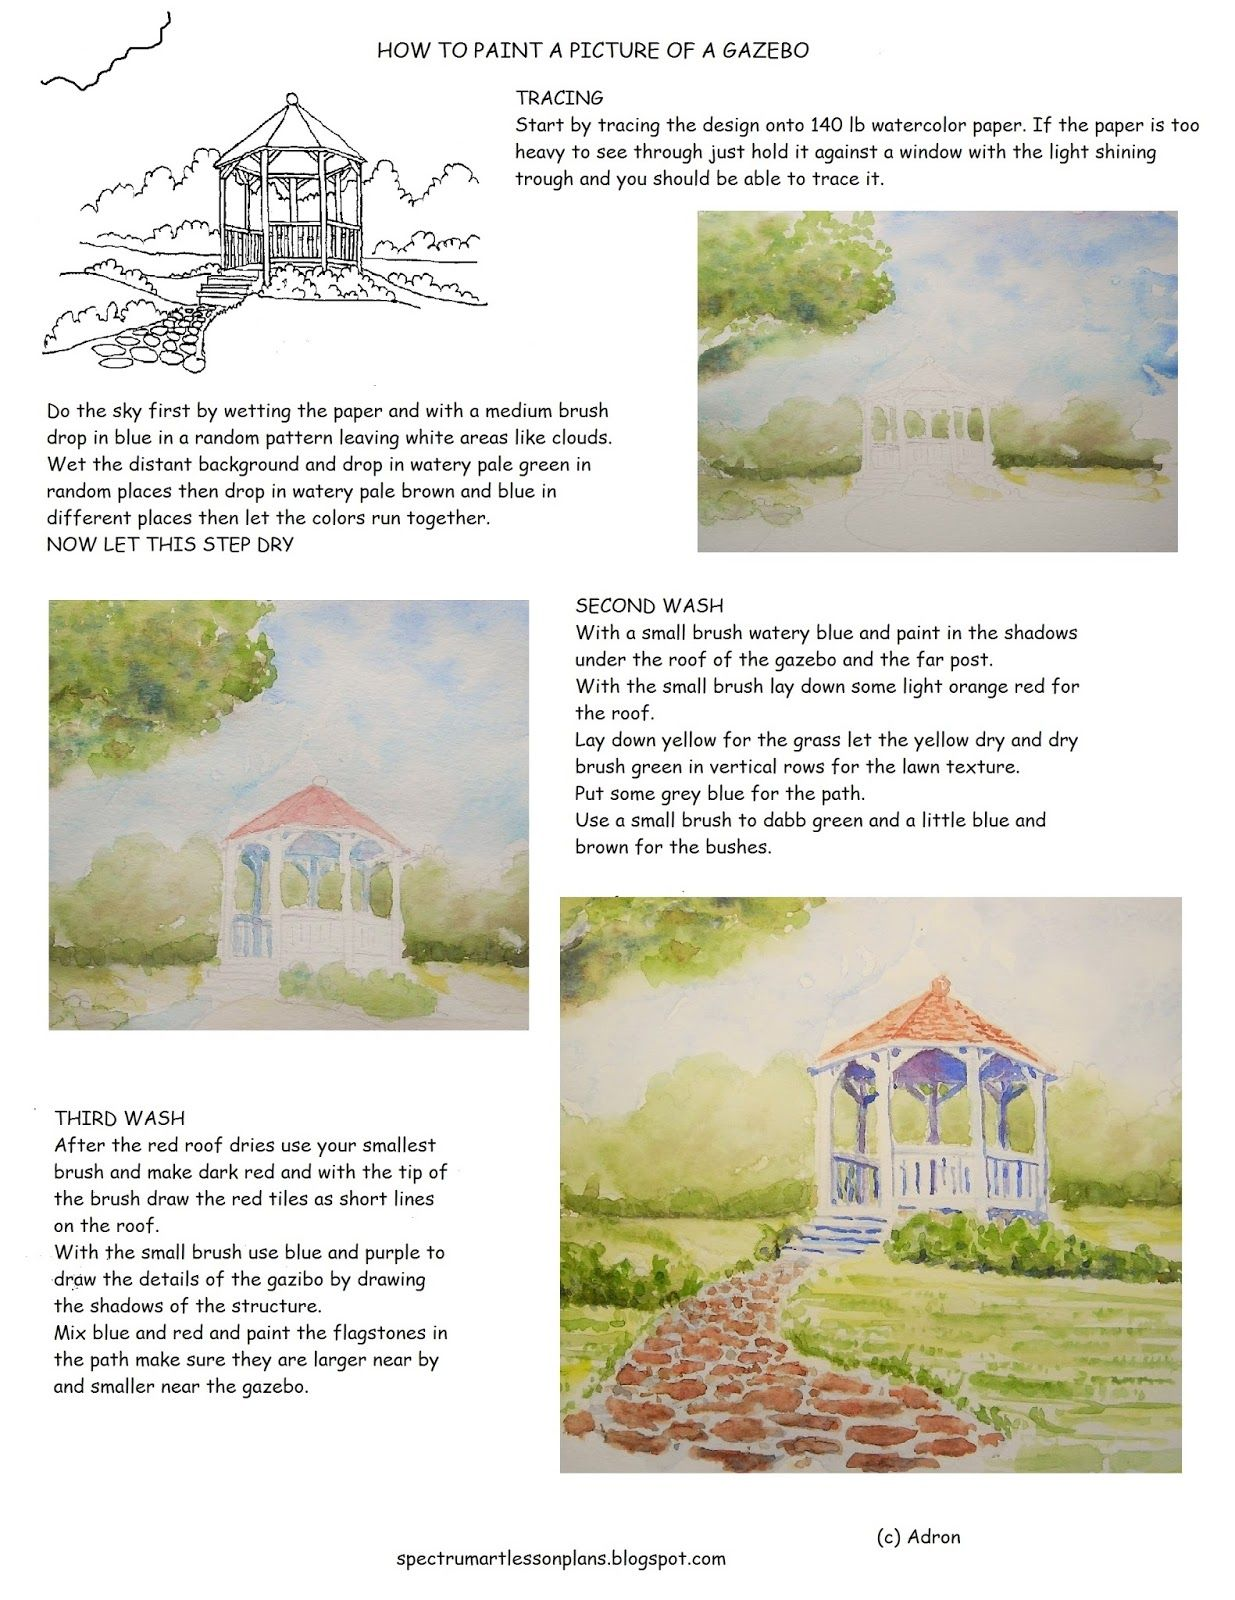 How To Paint A Picture Of A Gazebo